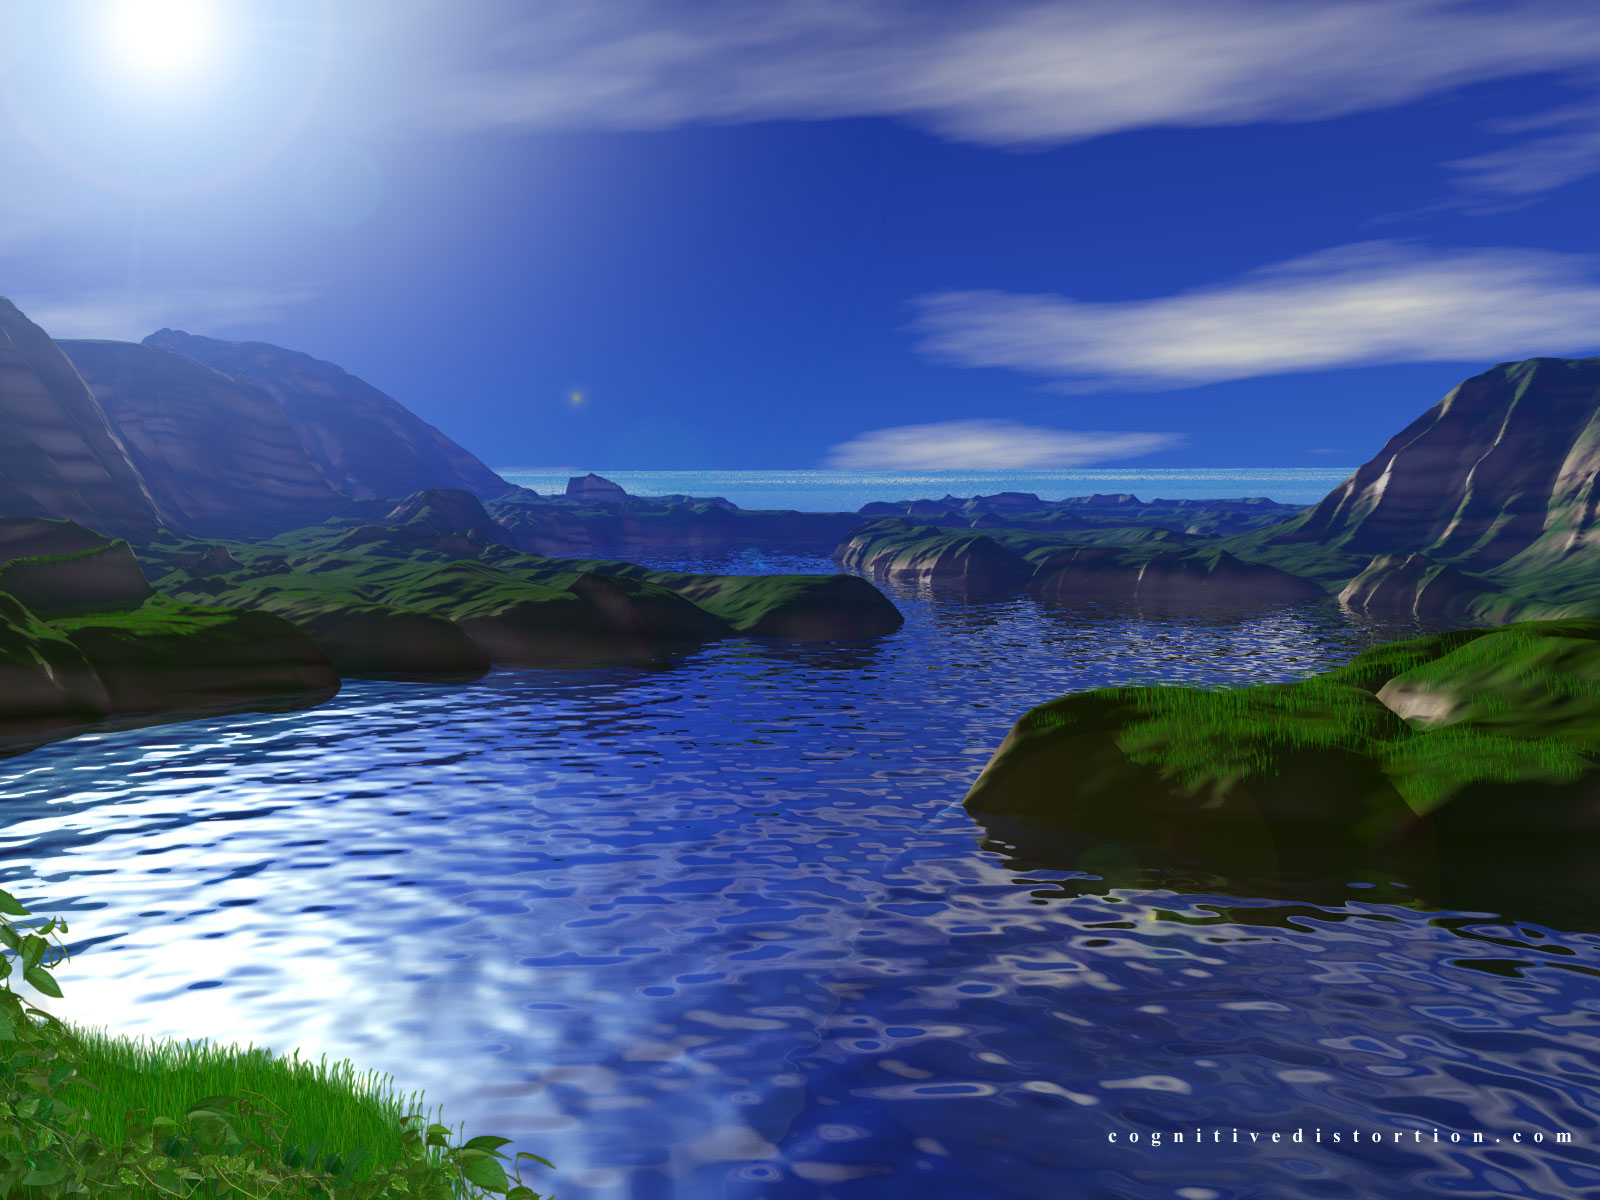 New And Latest Natural Desktop Wallpapers 2011 2012: Blue